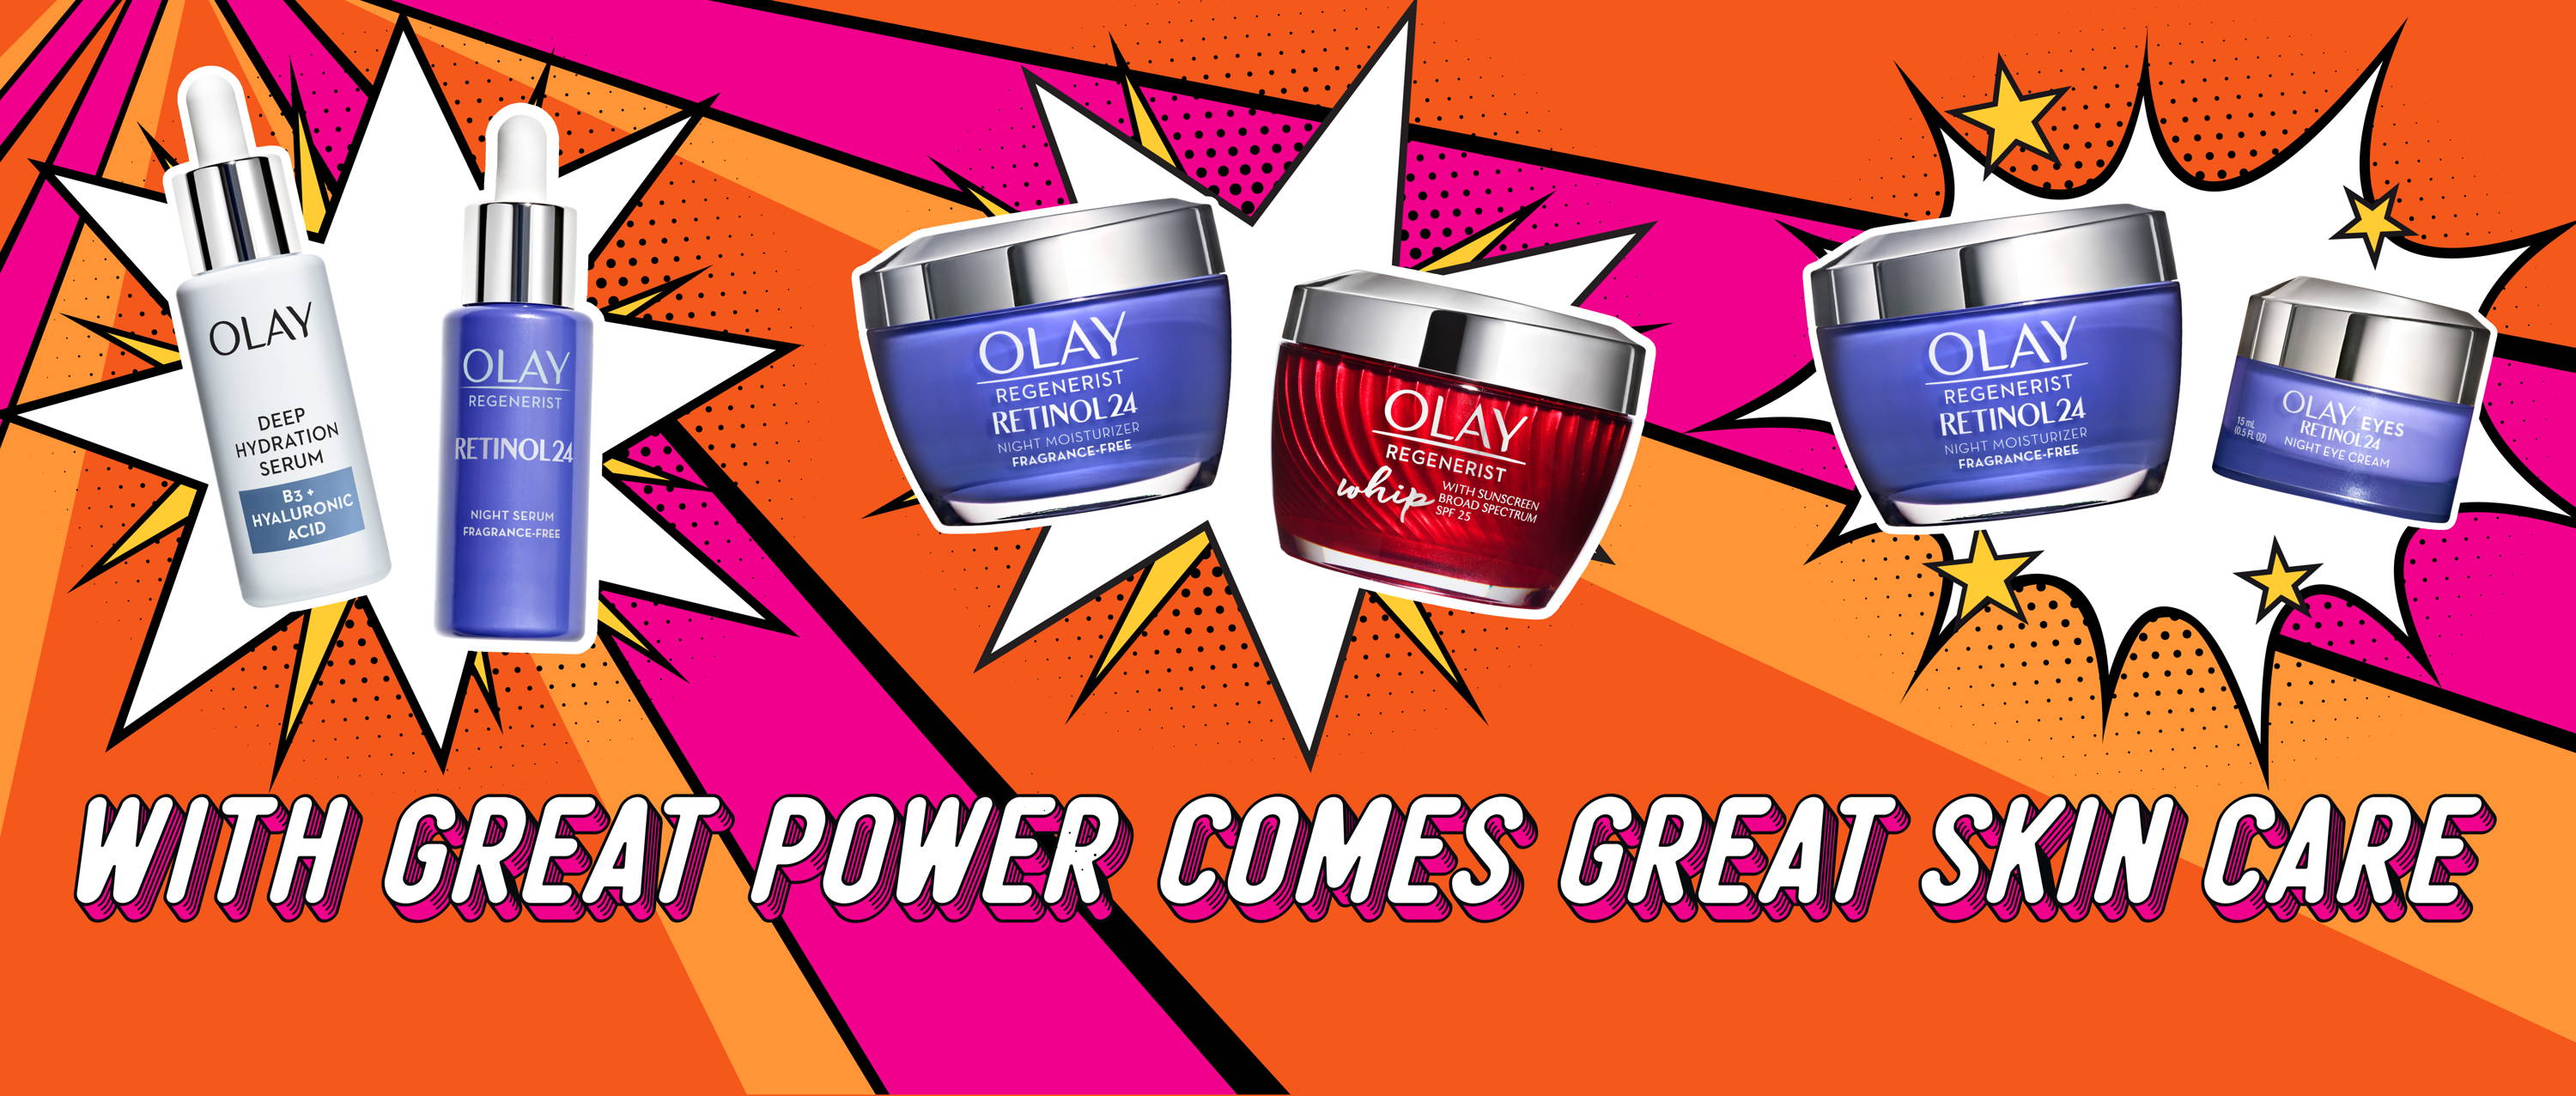 Homepage banner - Power couples campaign:  With great power comes great skin care.